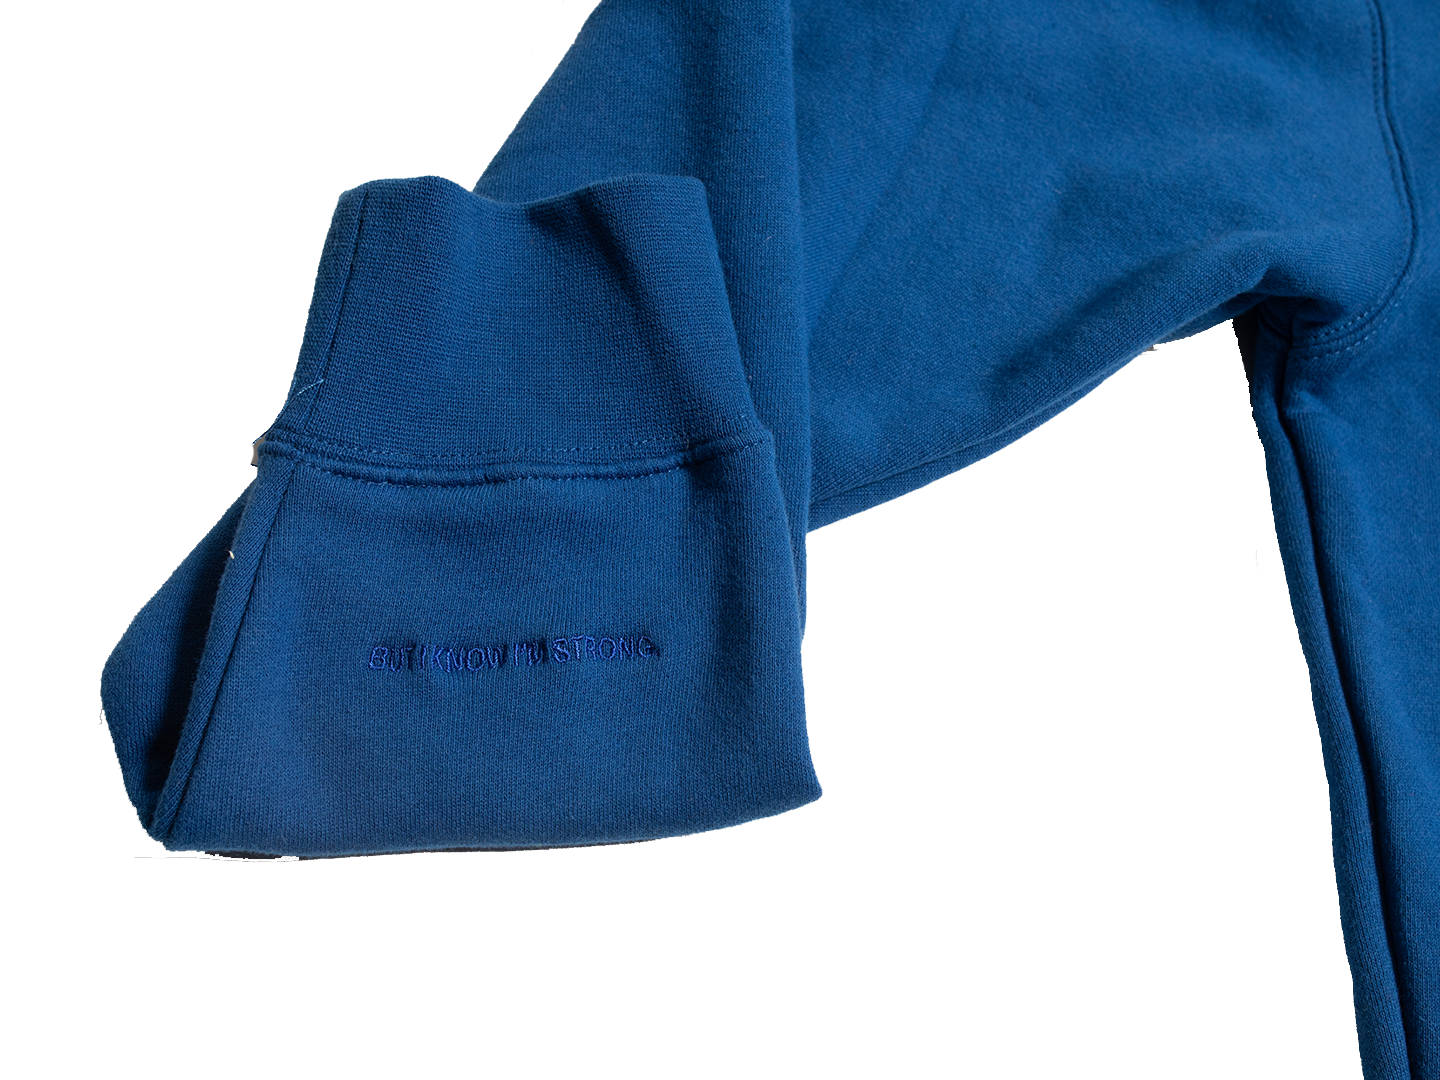 2493fe8b16b Hoodie blue load image into gallery viewer you matter png 1440x1080 Matter  hoodie sleeve